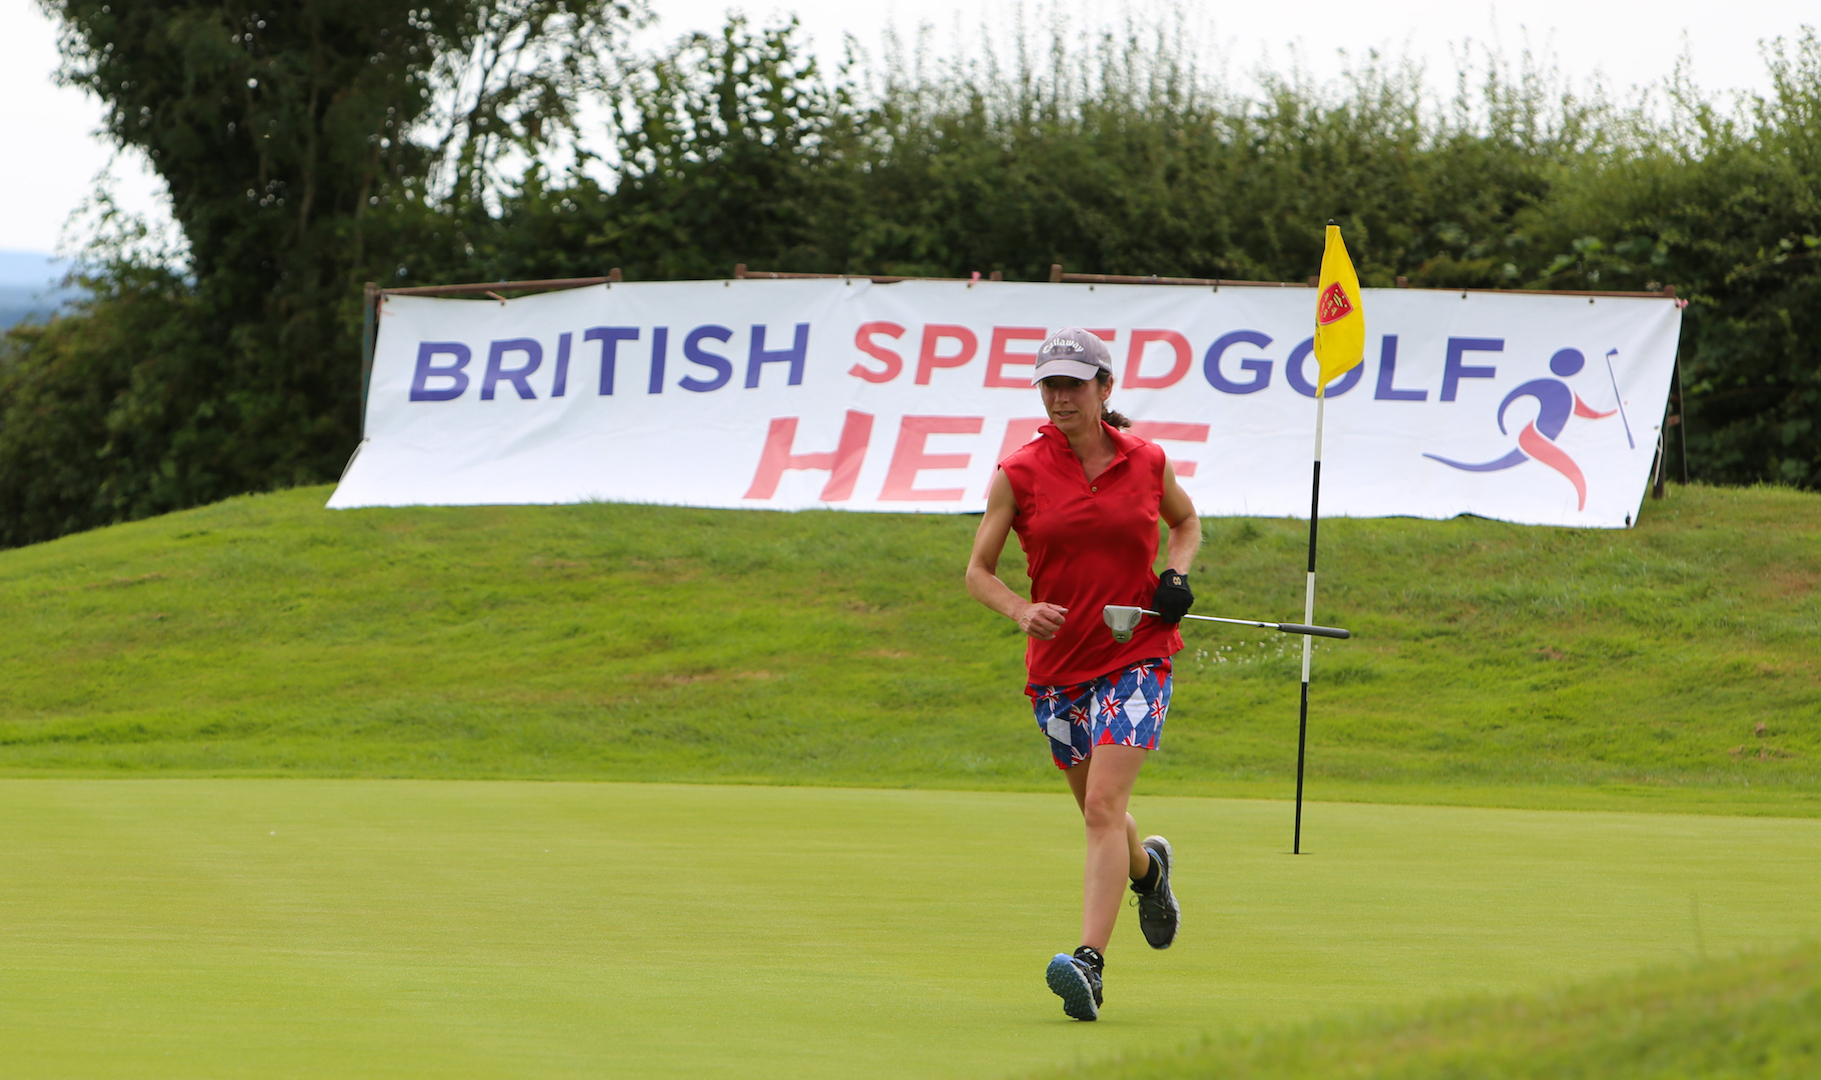 2017 British Open Speedgolf Championships